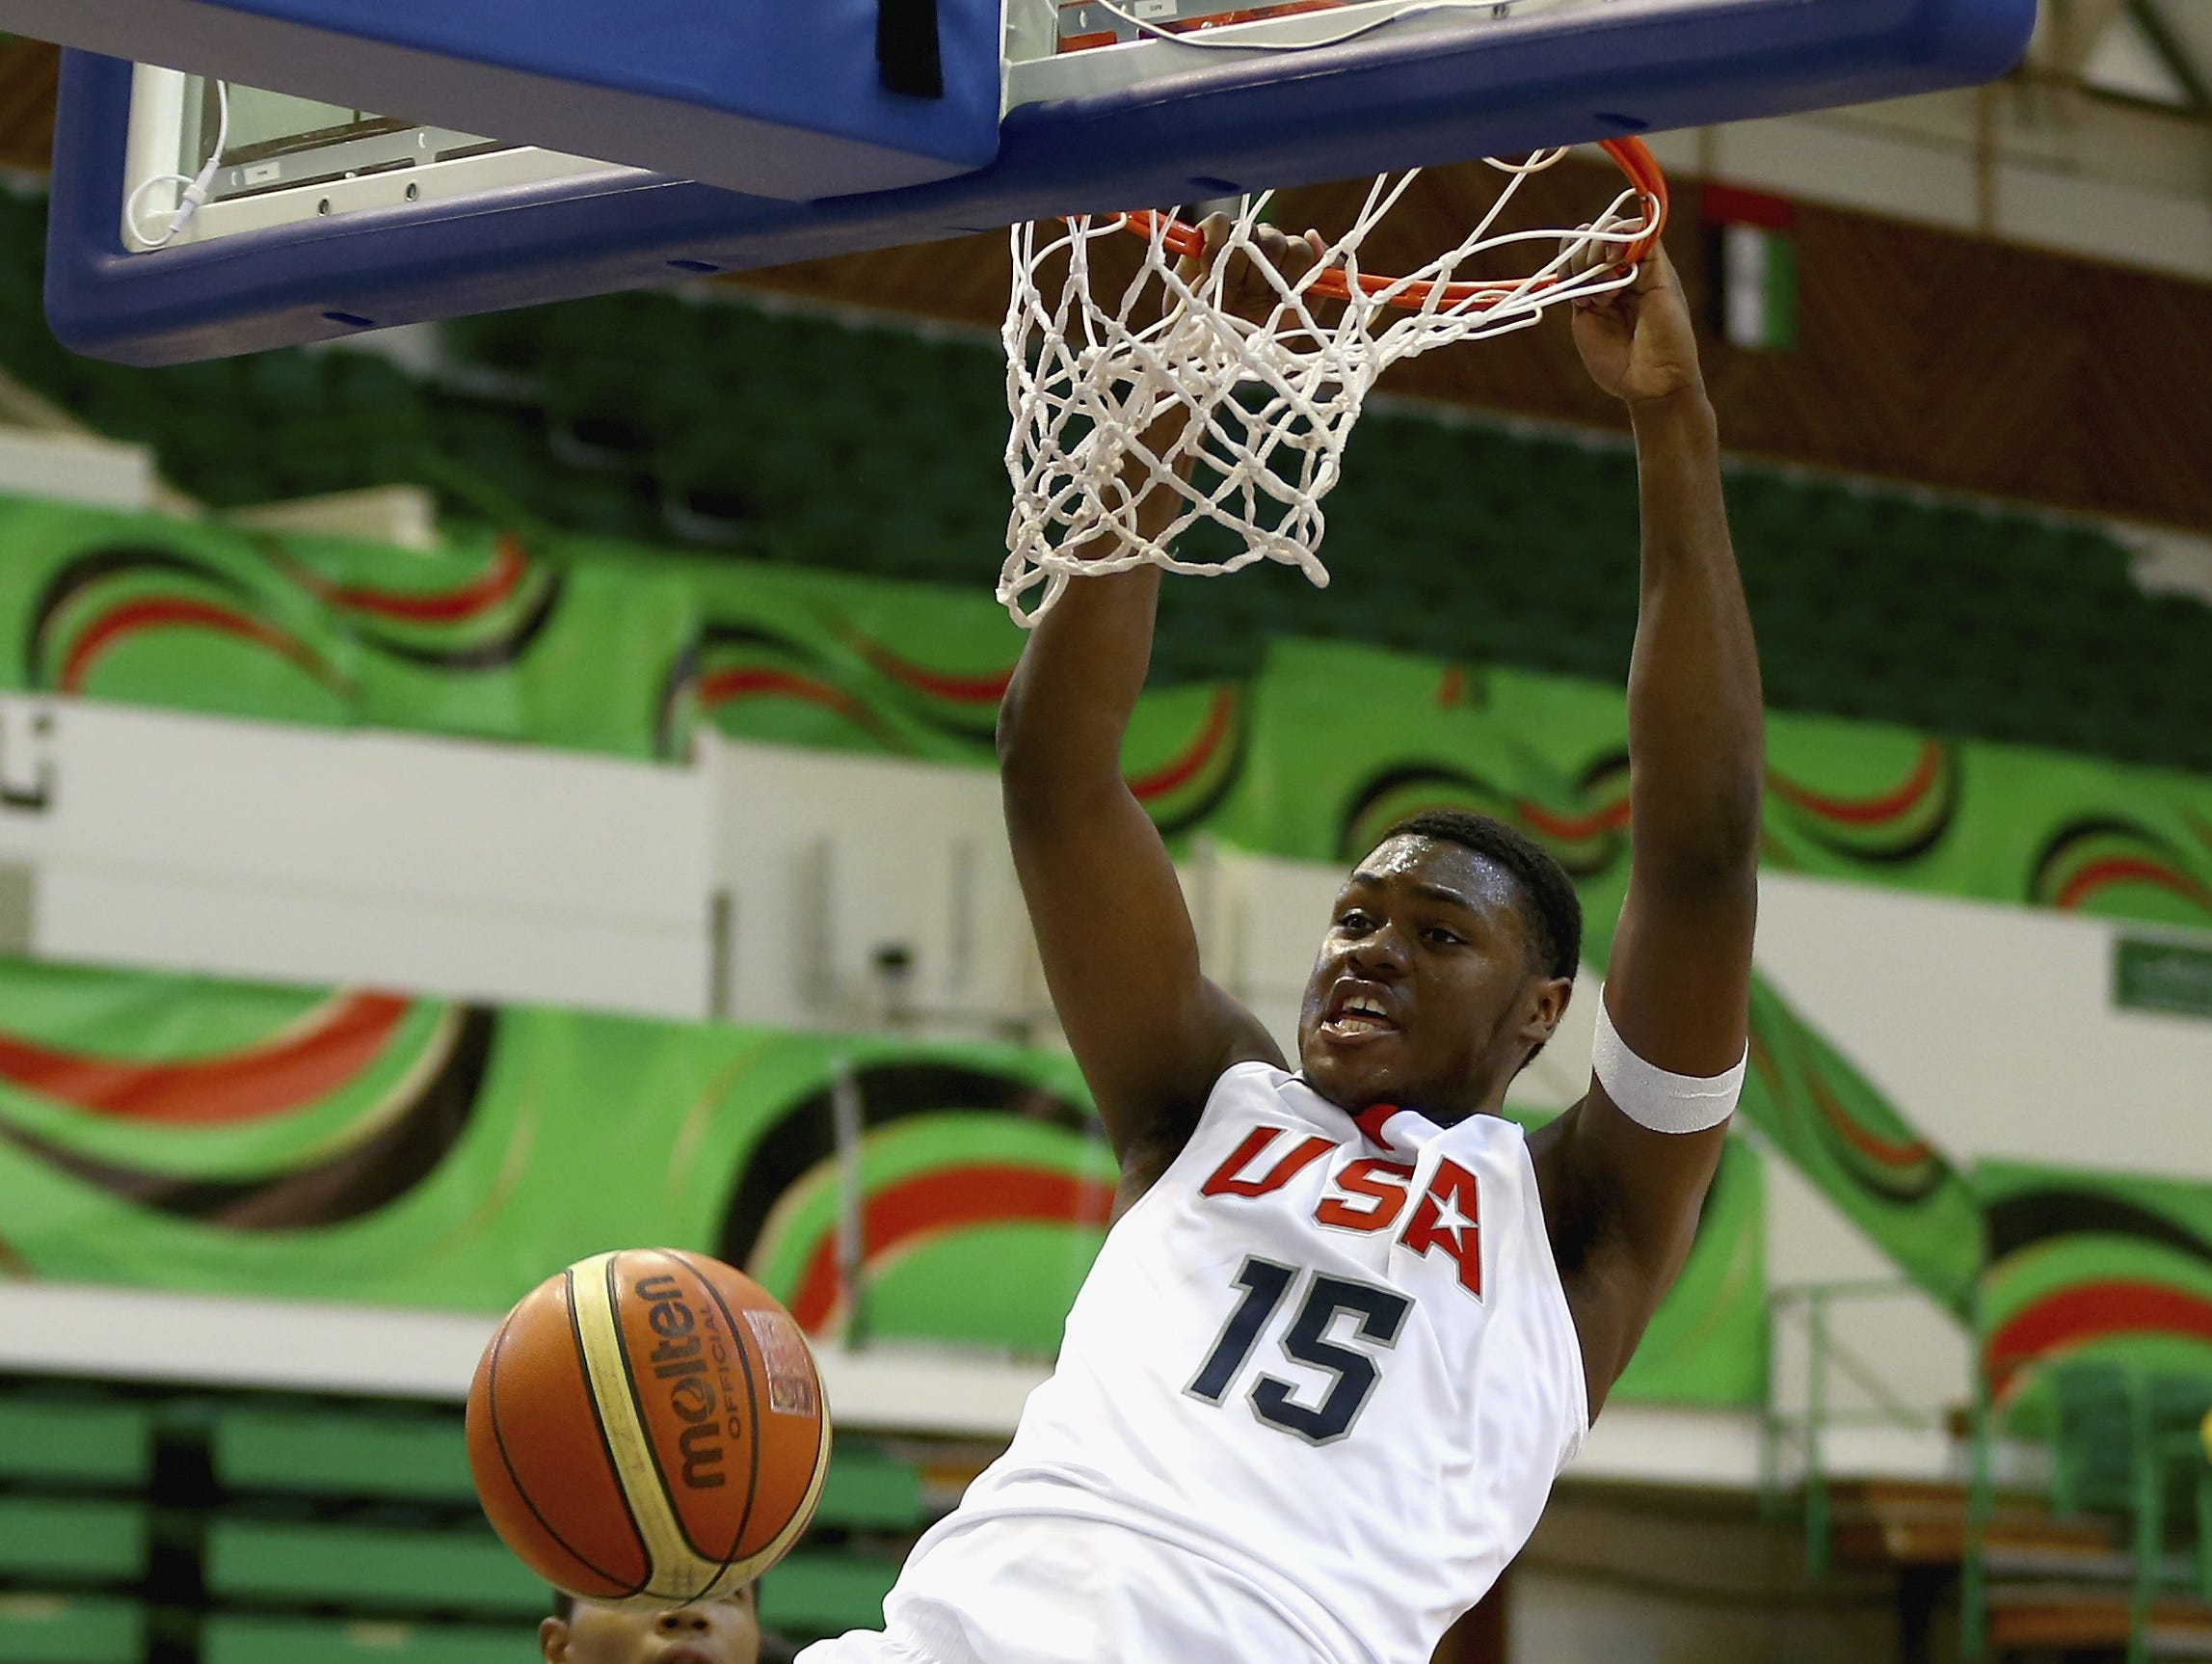 Diamond Stone of the United States shoots against Daniel Nnanna of Japan during the FIBA U17 World Championships Group Match between Japan and United States of America at Al Shabab Club on August 12, 2014 in Dubai, United Arab Emirates.